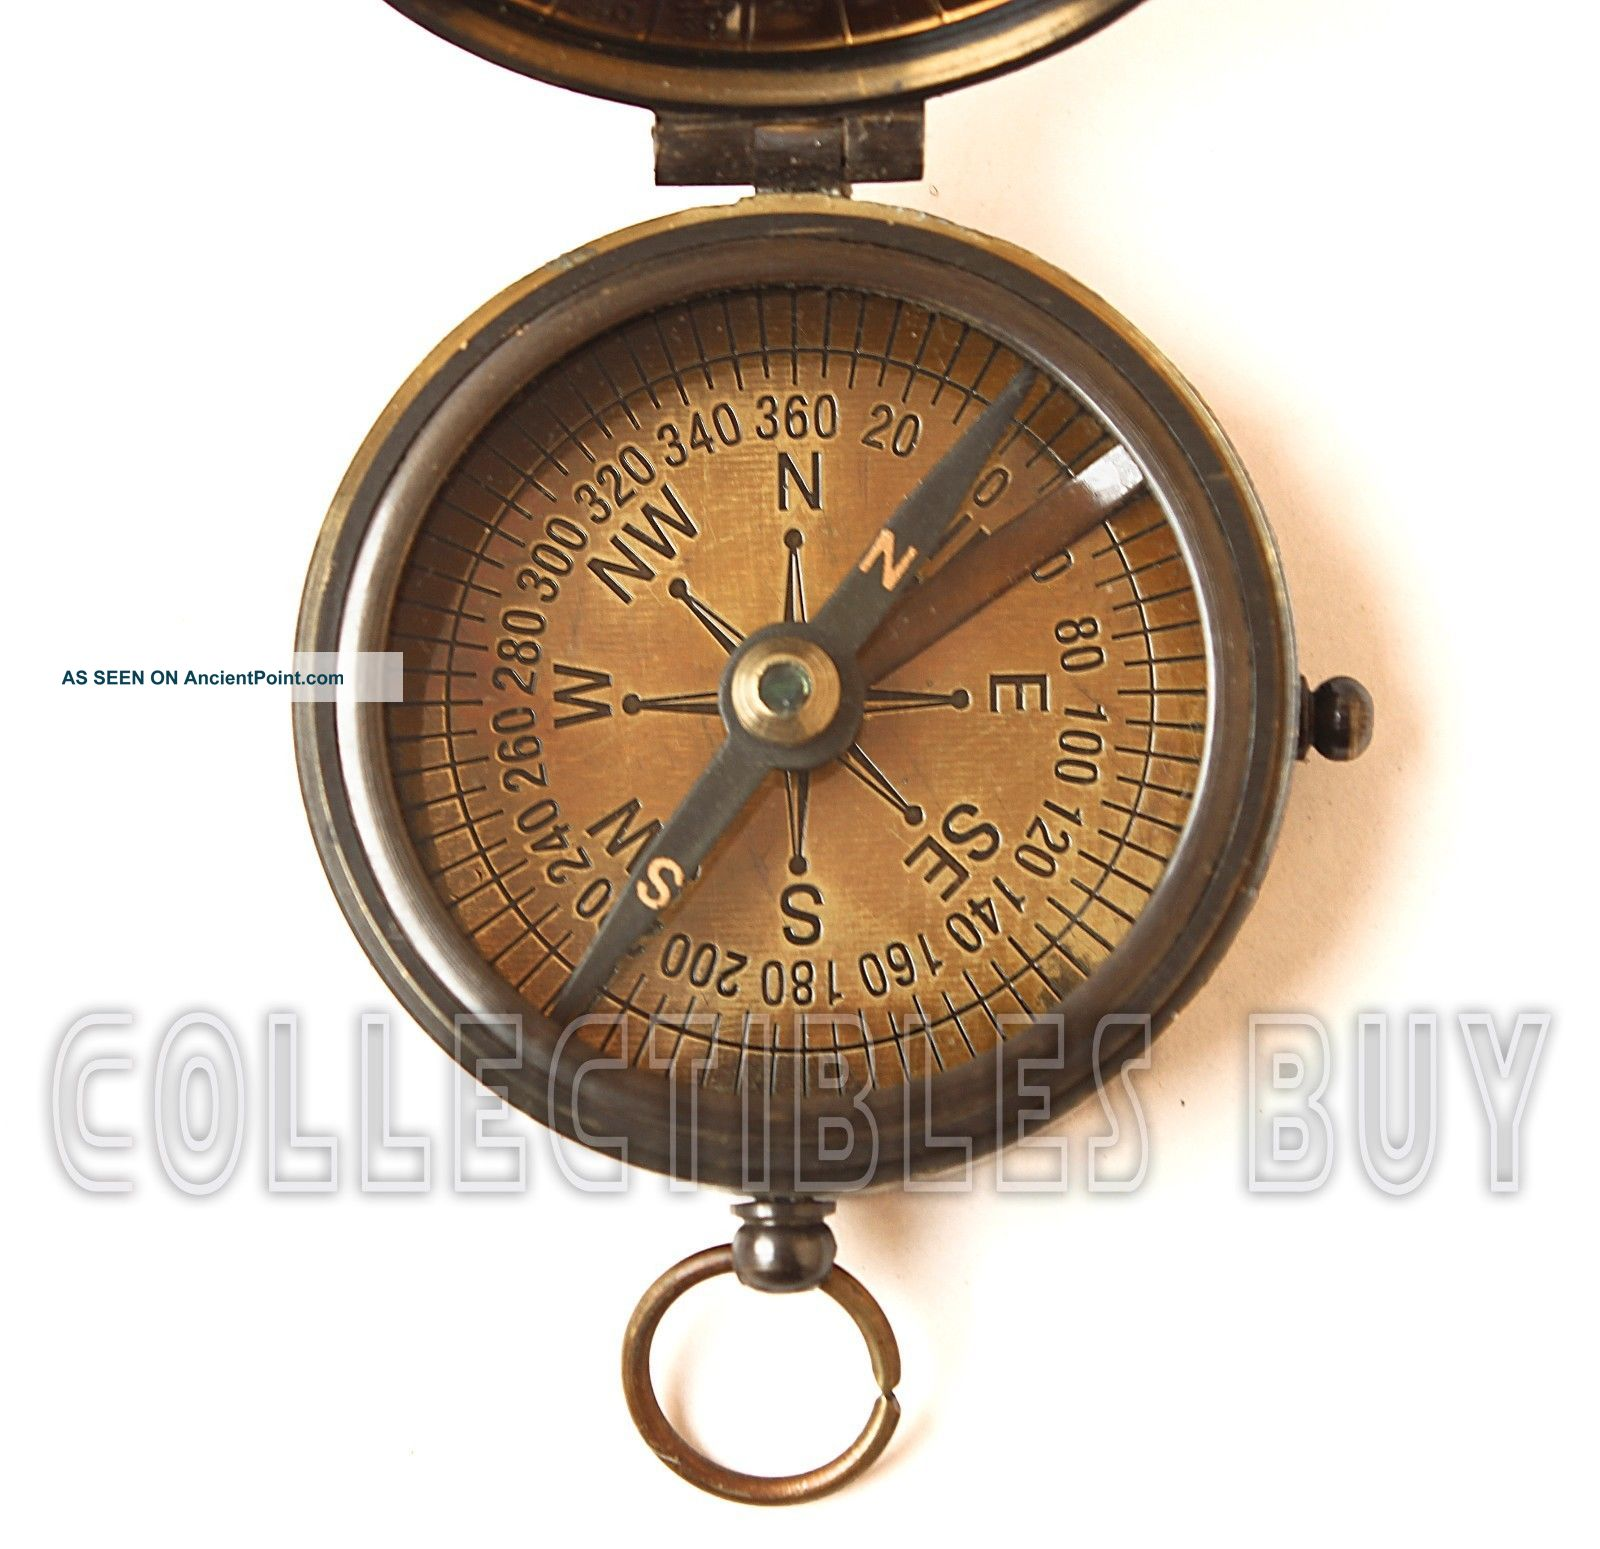 Antique Maritime Calendar Compass Nautical Kelvin & Hughes Compass Trekking Trip Compasses photo